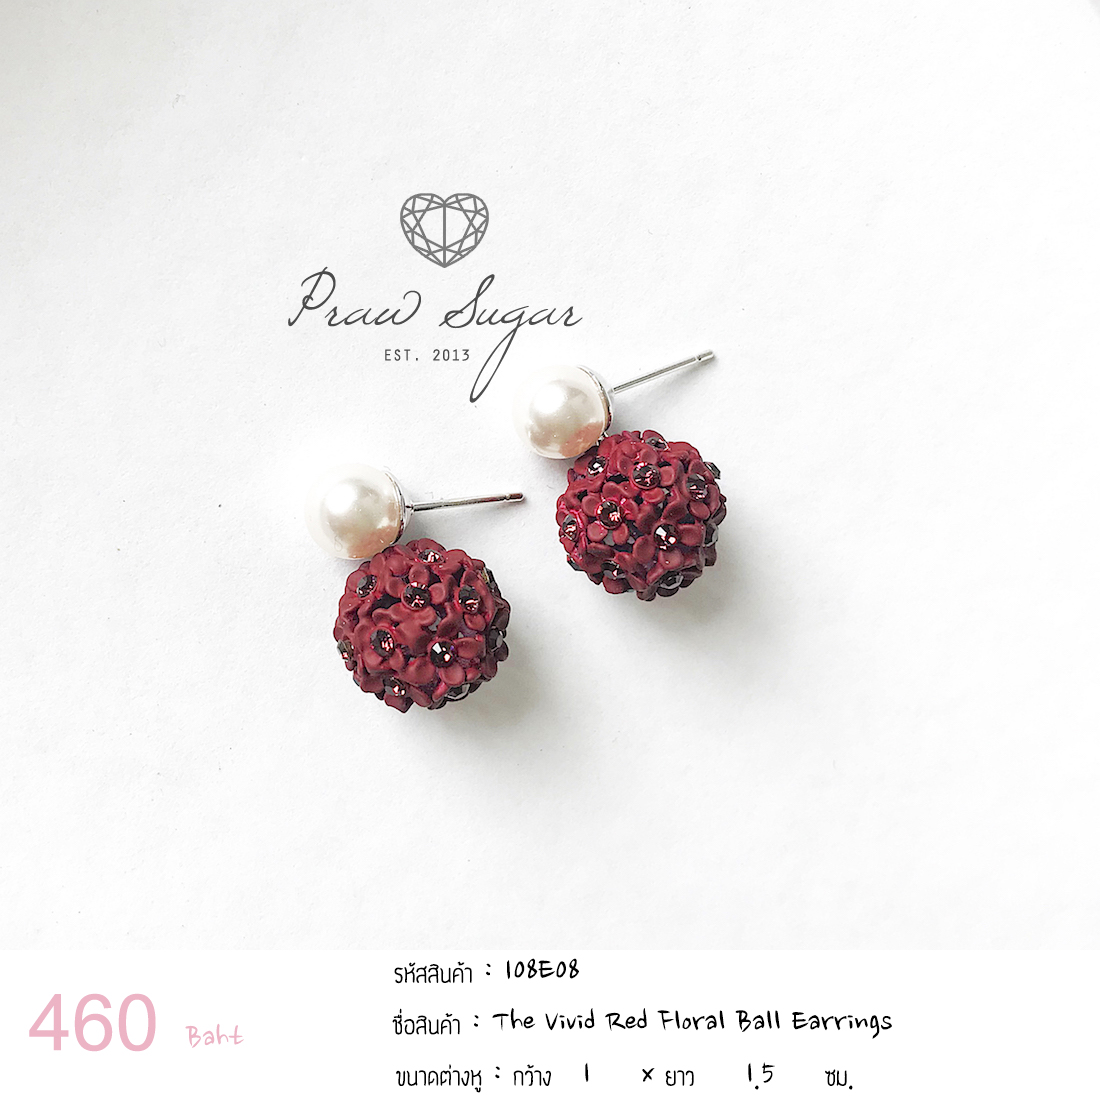 The Vivid Red Floral Ball Earrings